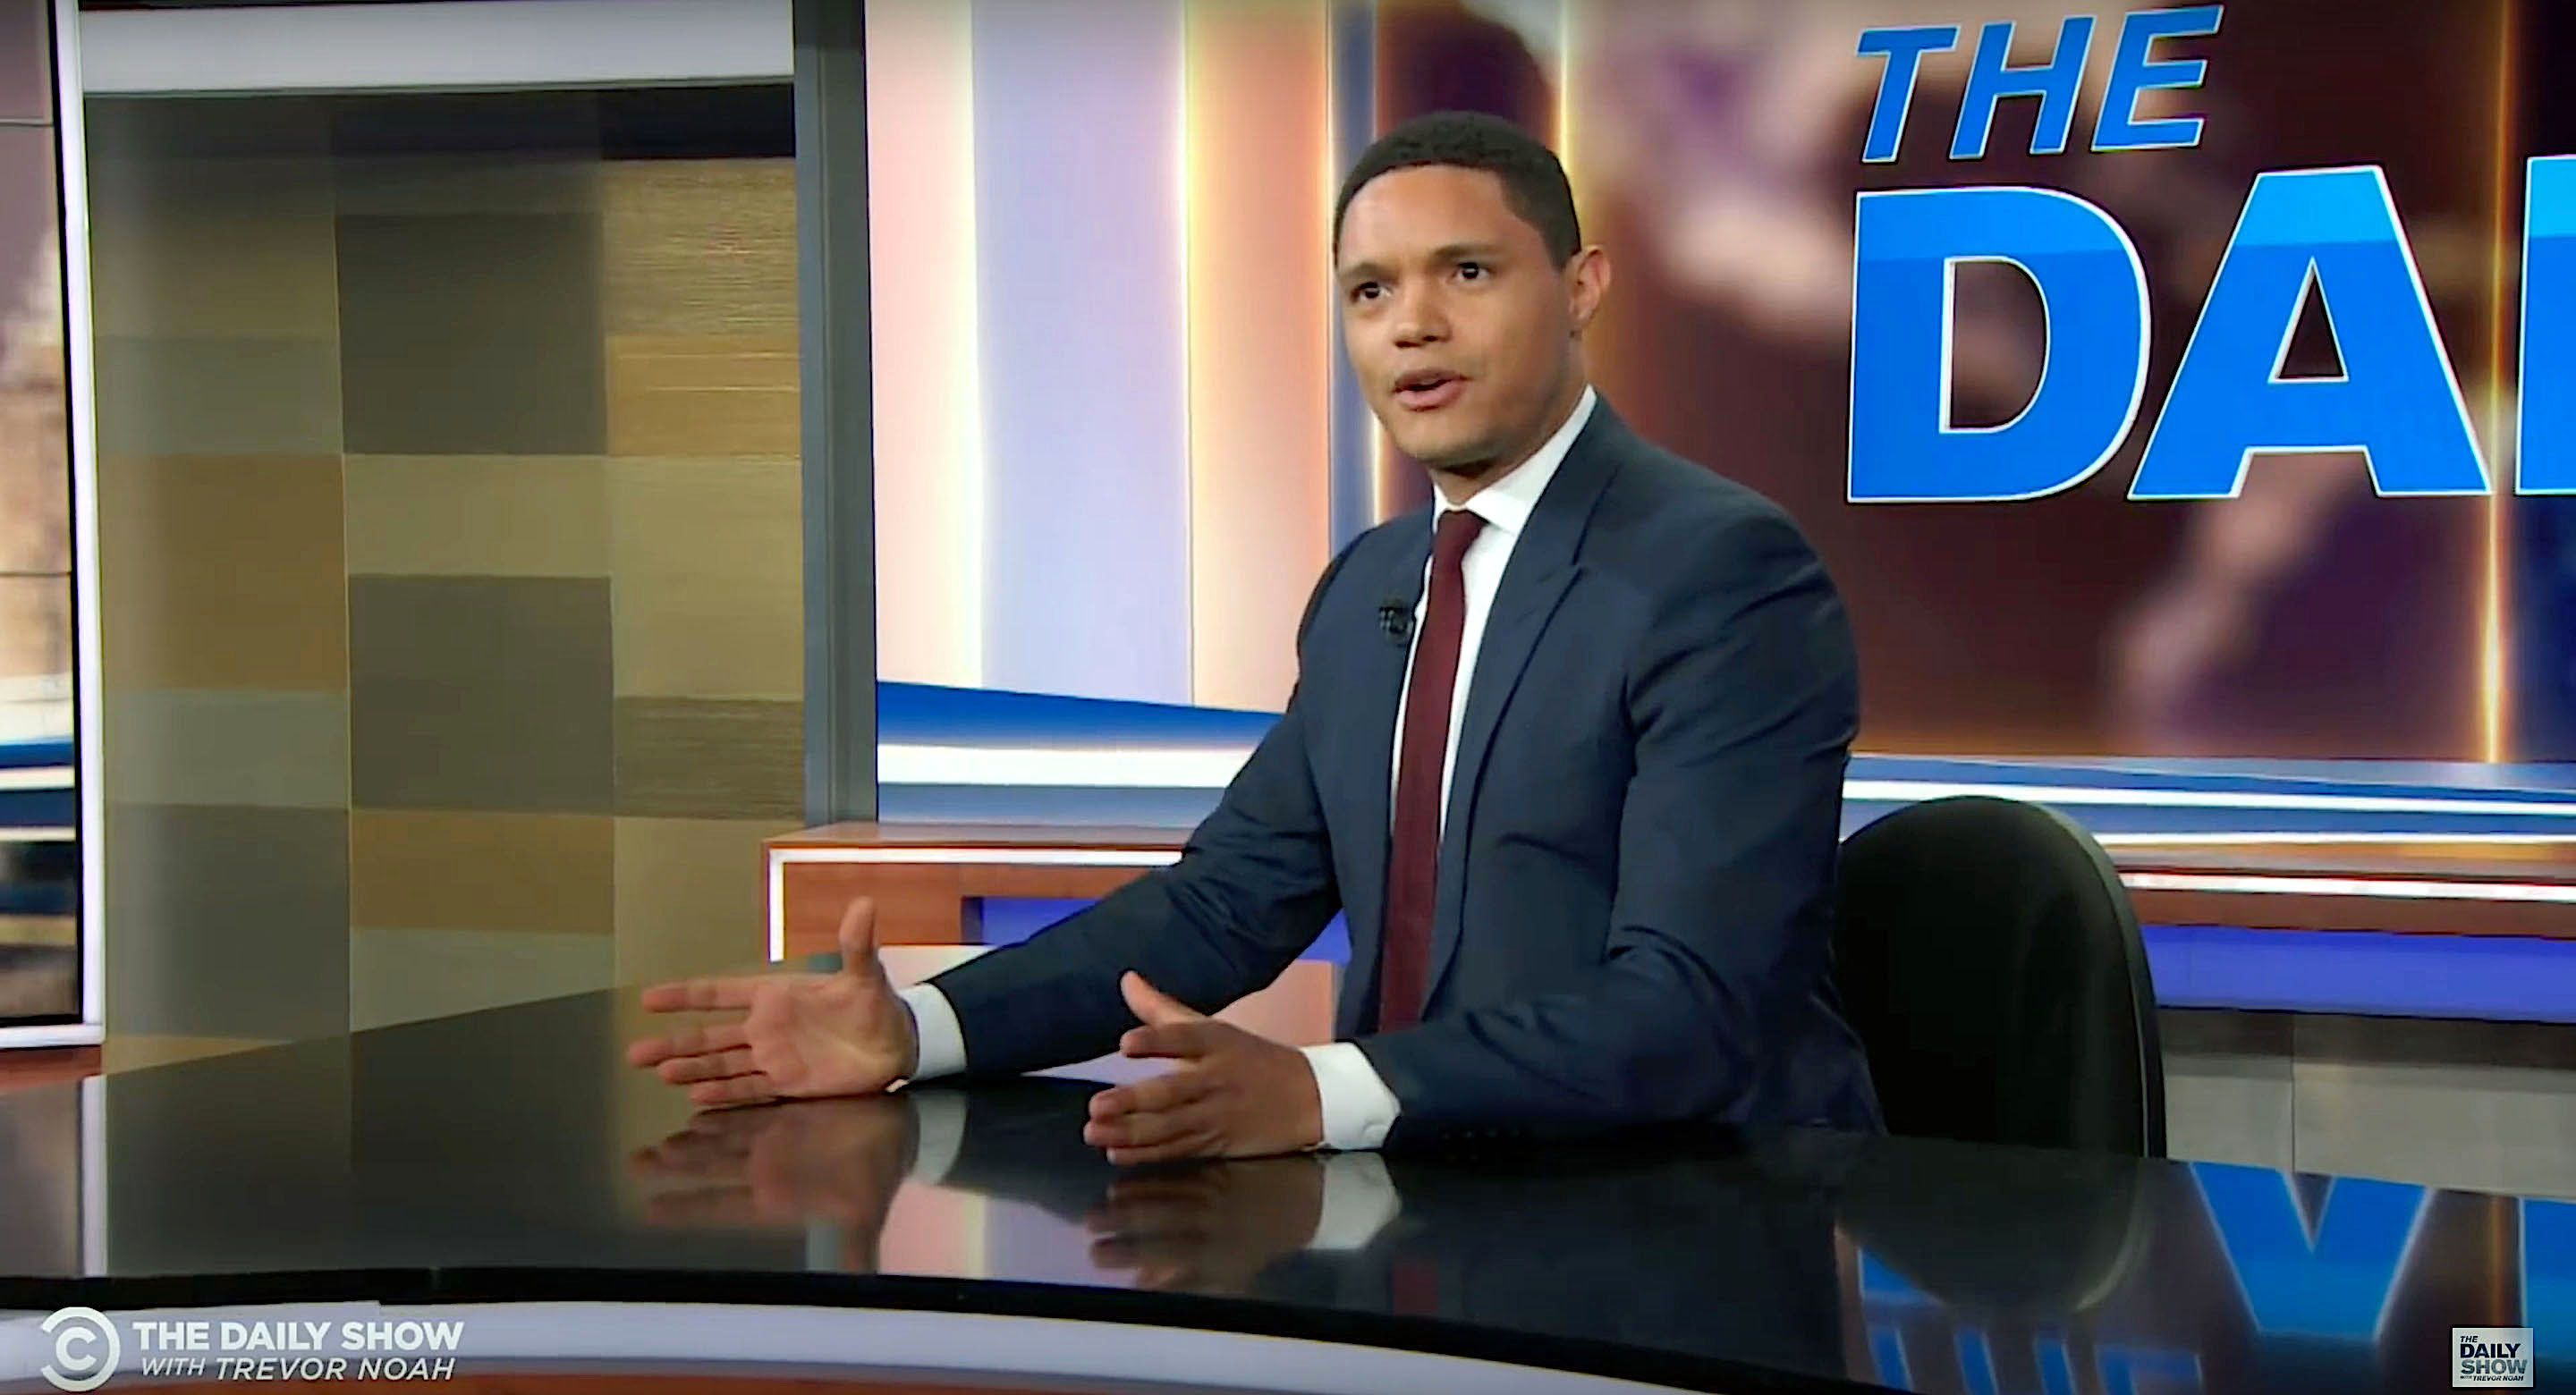 Trevor Noah discusses President Donald Trumps news conference